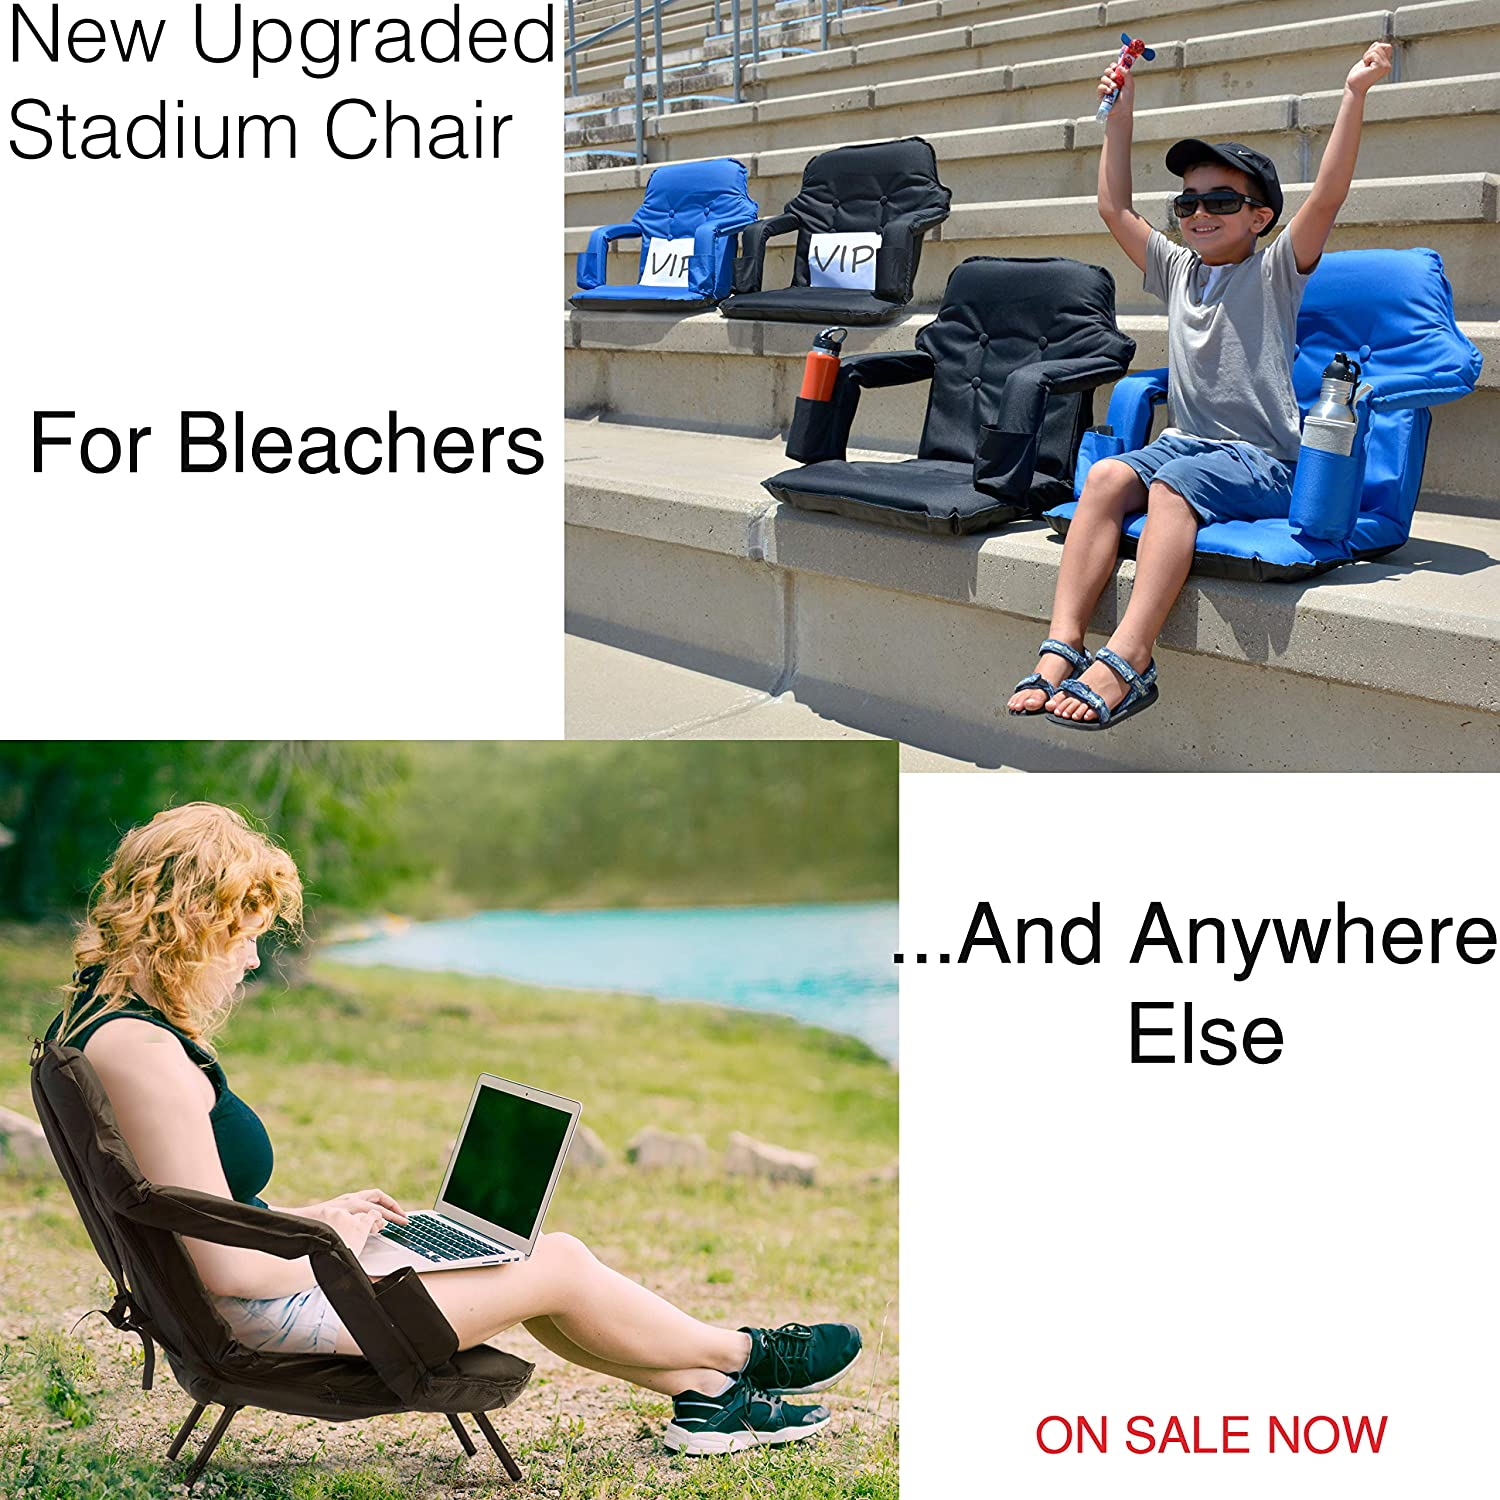 High Backrest+Thick Padded Back /& Armrest+Water Proof New 2020 Patent Pending Premium Model Foldable Reclining Stadium Seat for Bleachers with Folding Legs Free Carry Bag